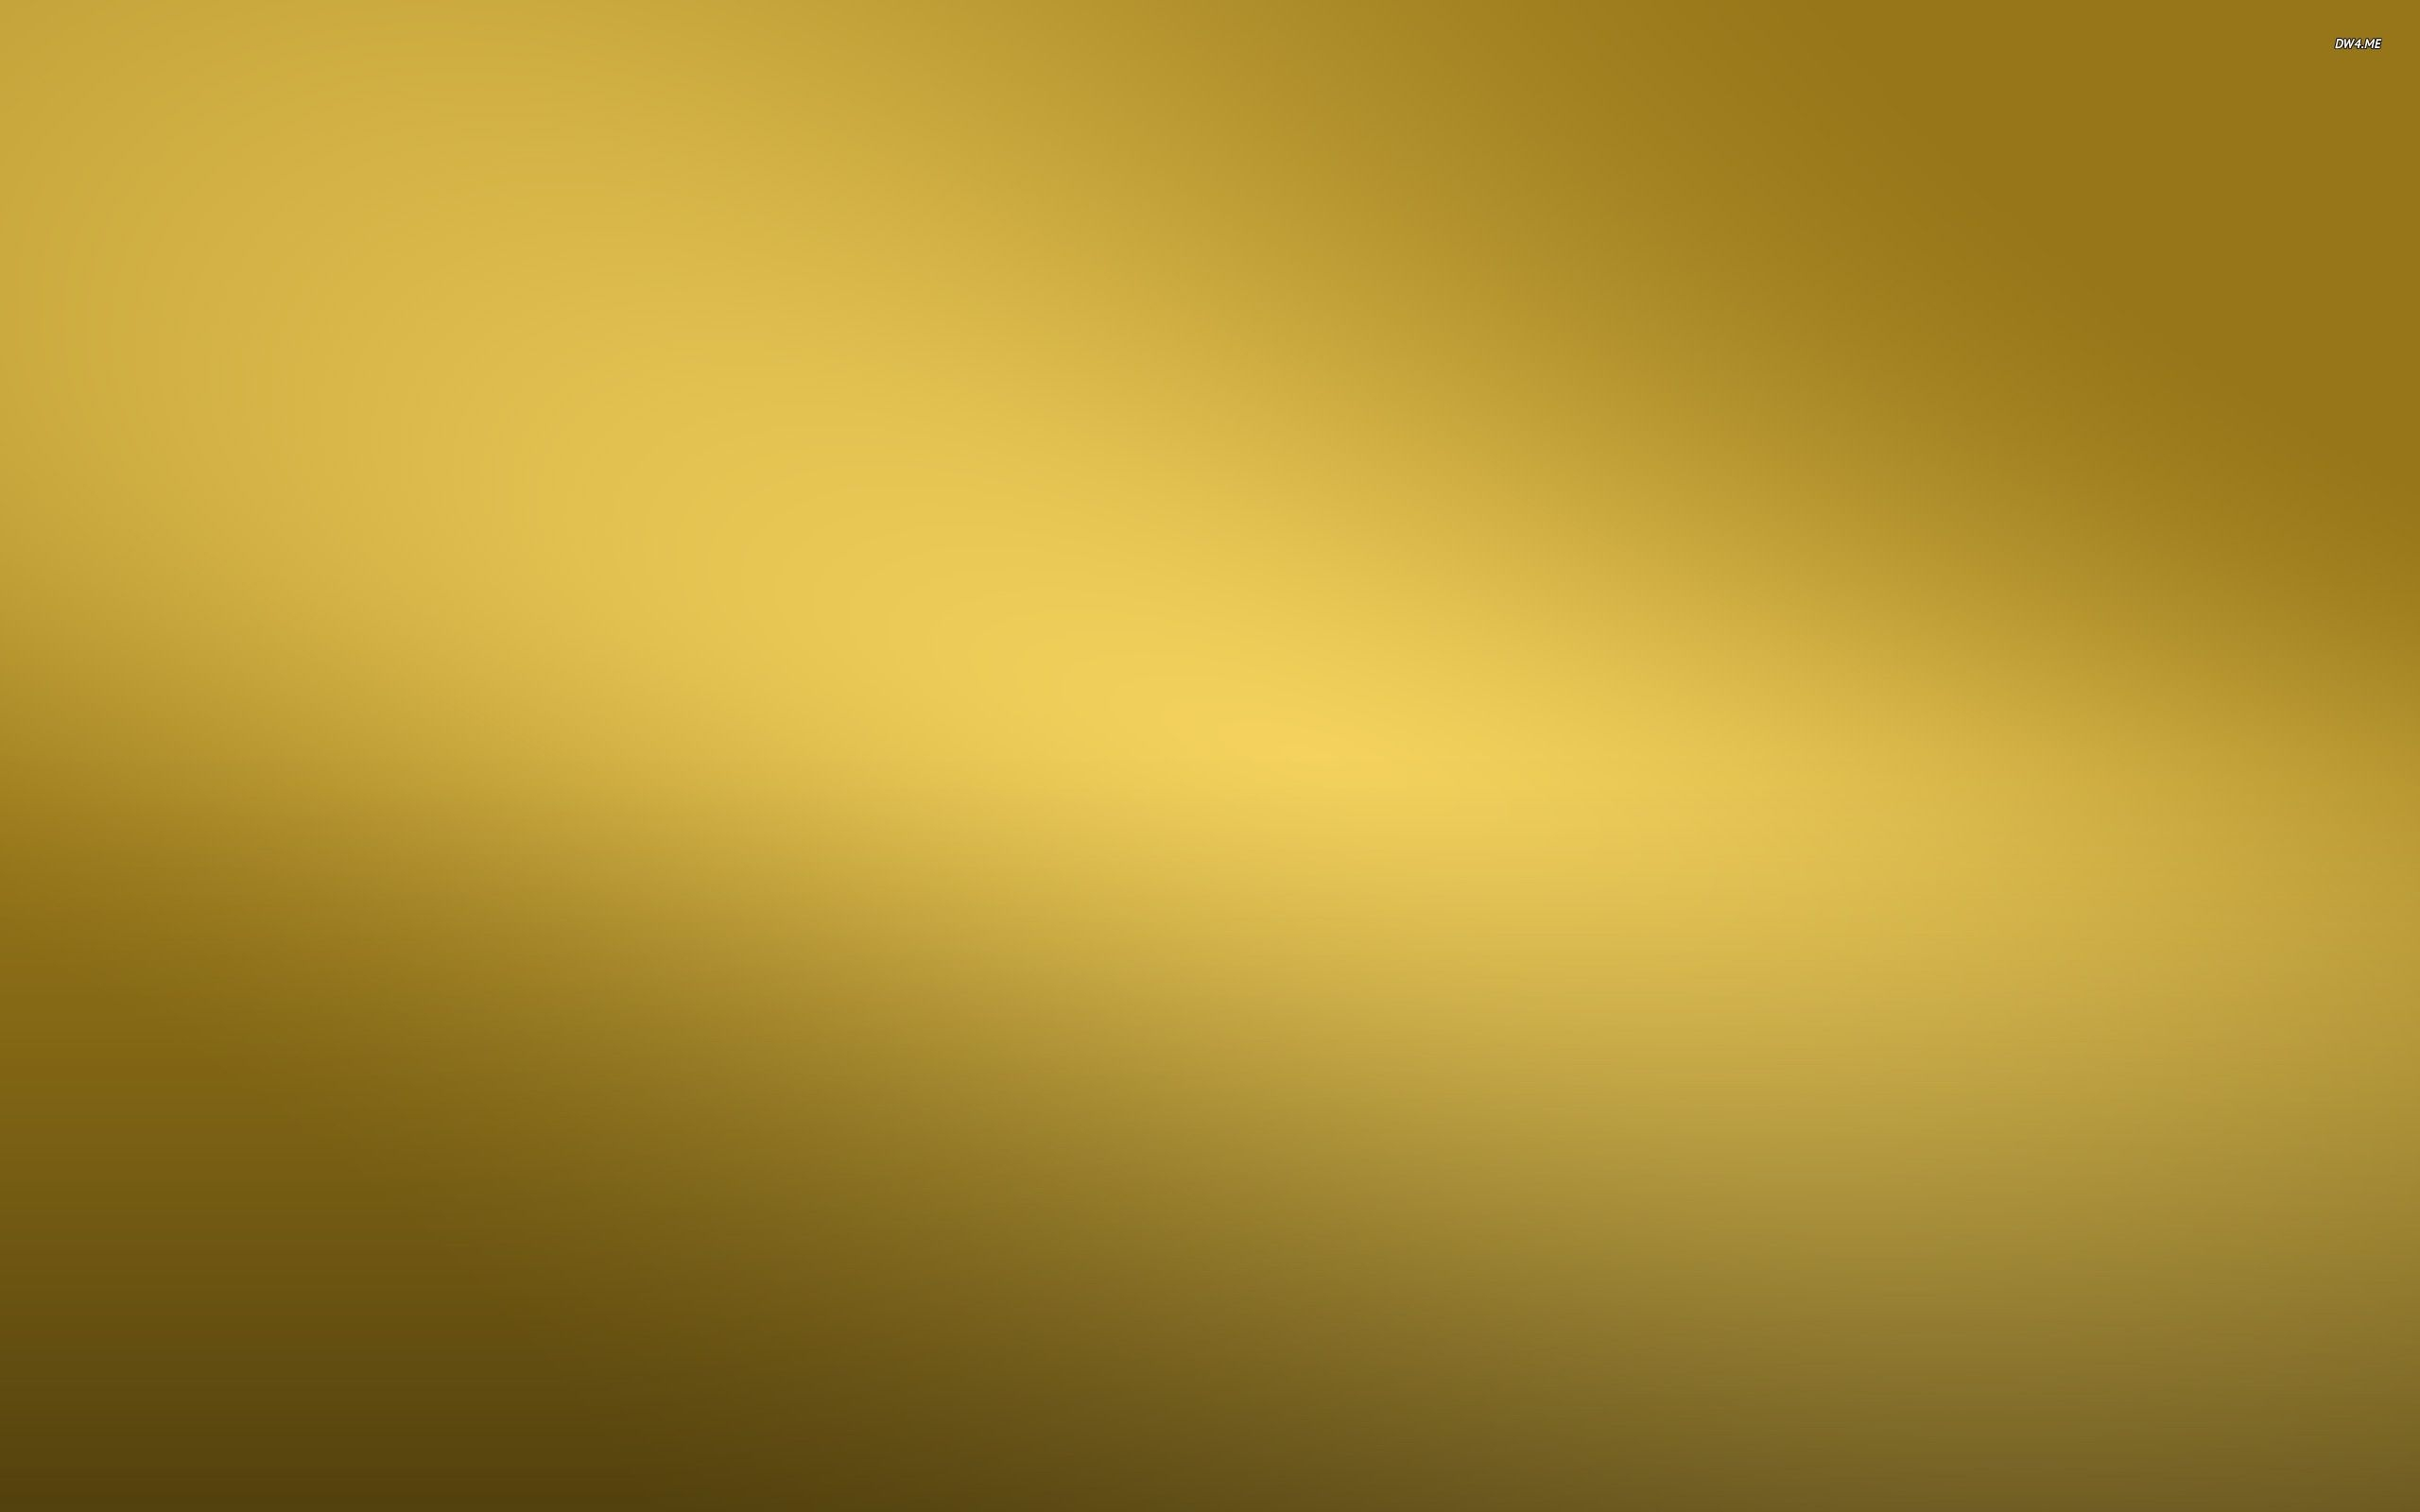 metallic gold color background - wallpaper. | golden backgrounds